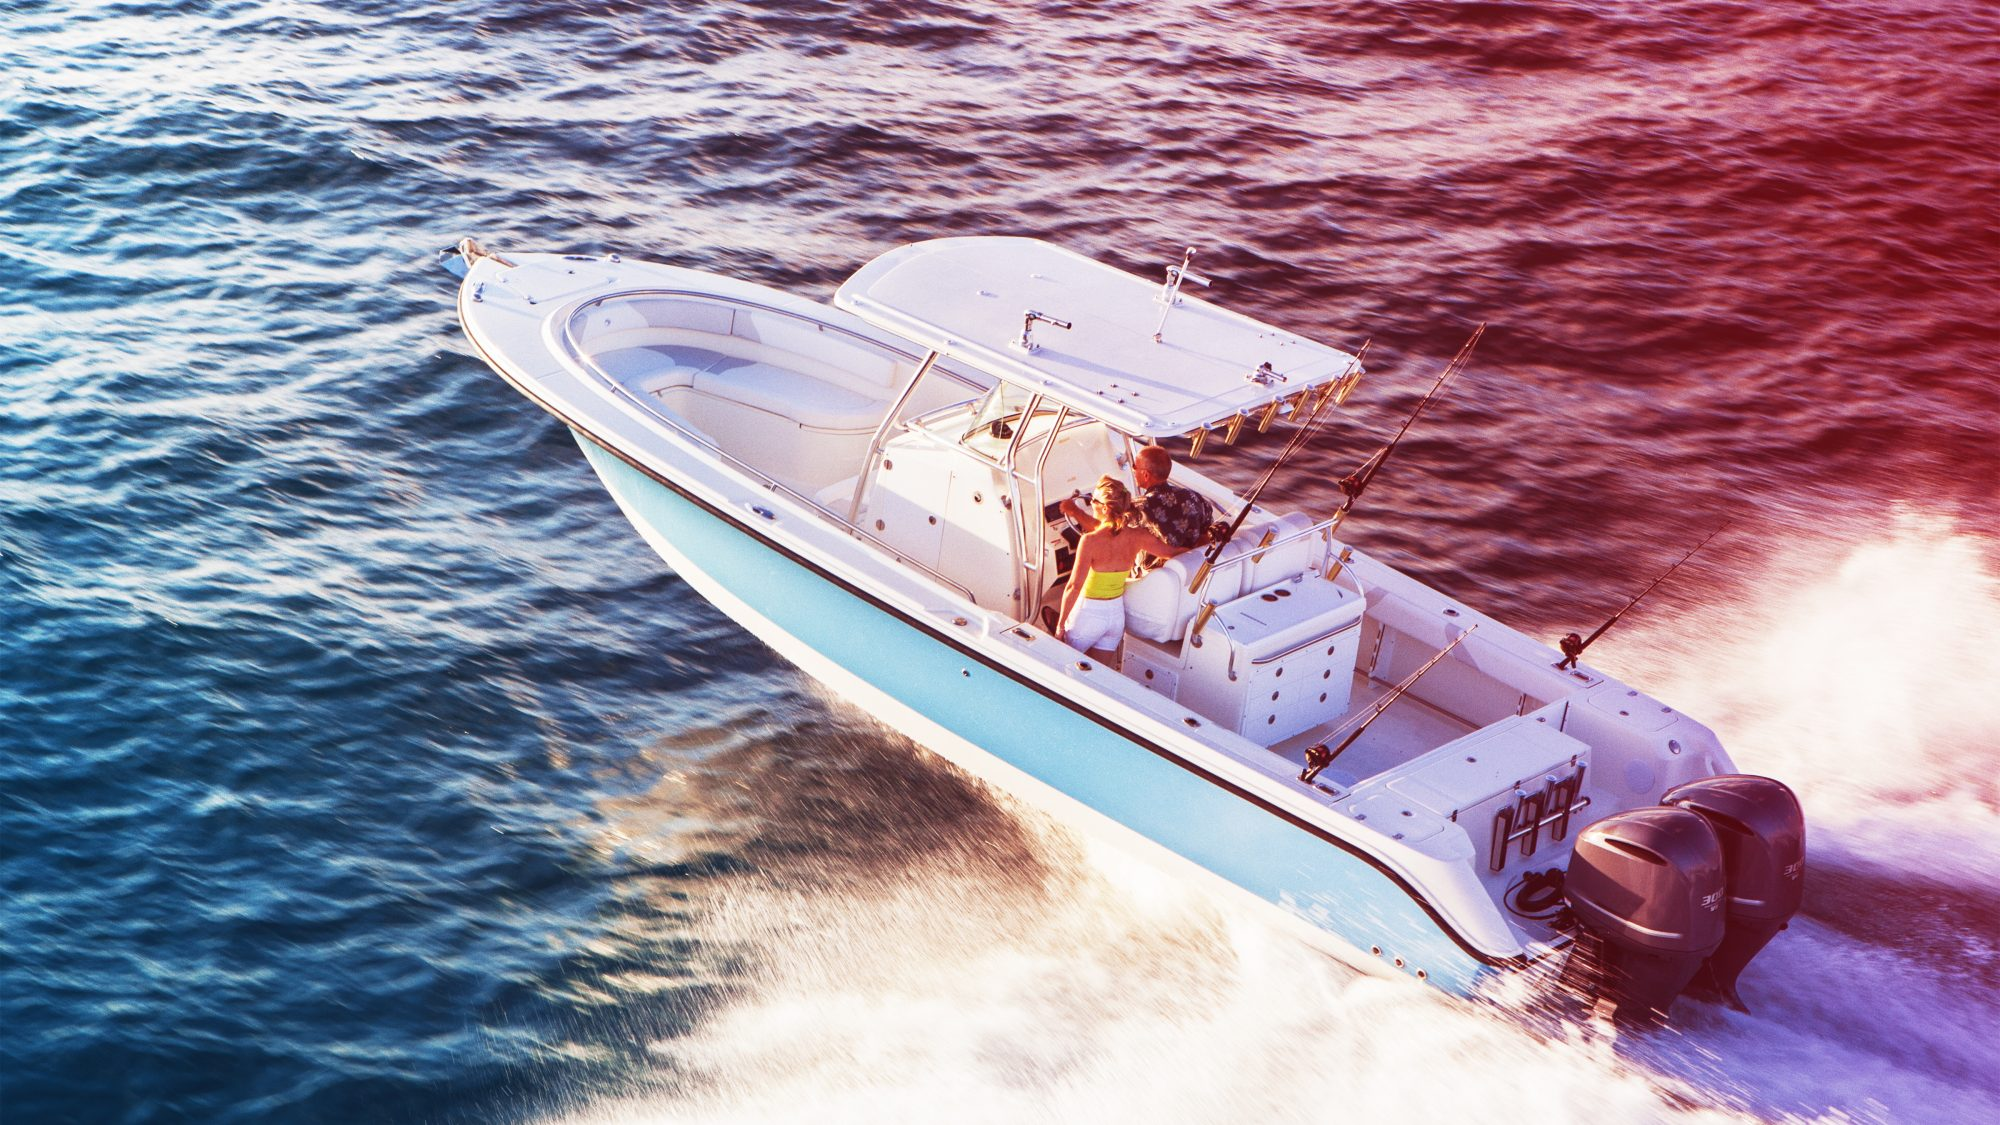 Carbon-Monoxide-Poisoning-From-Boat-GettyImages-961371356